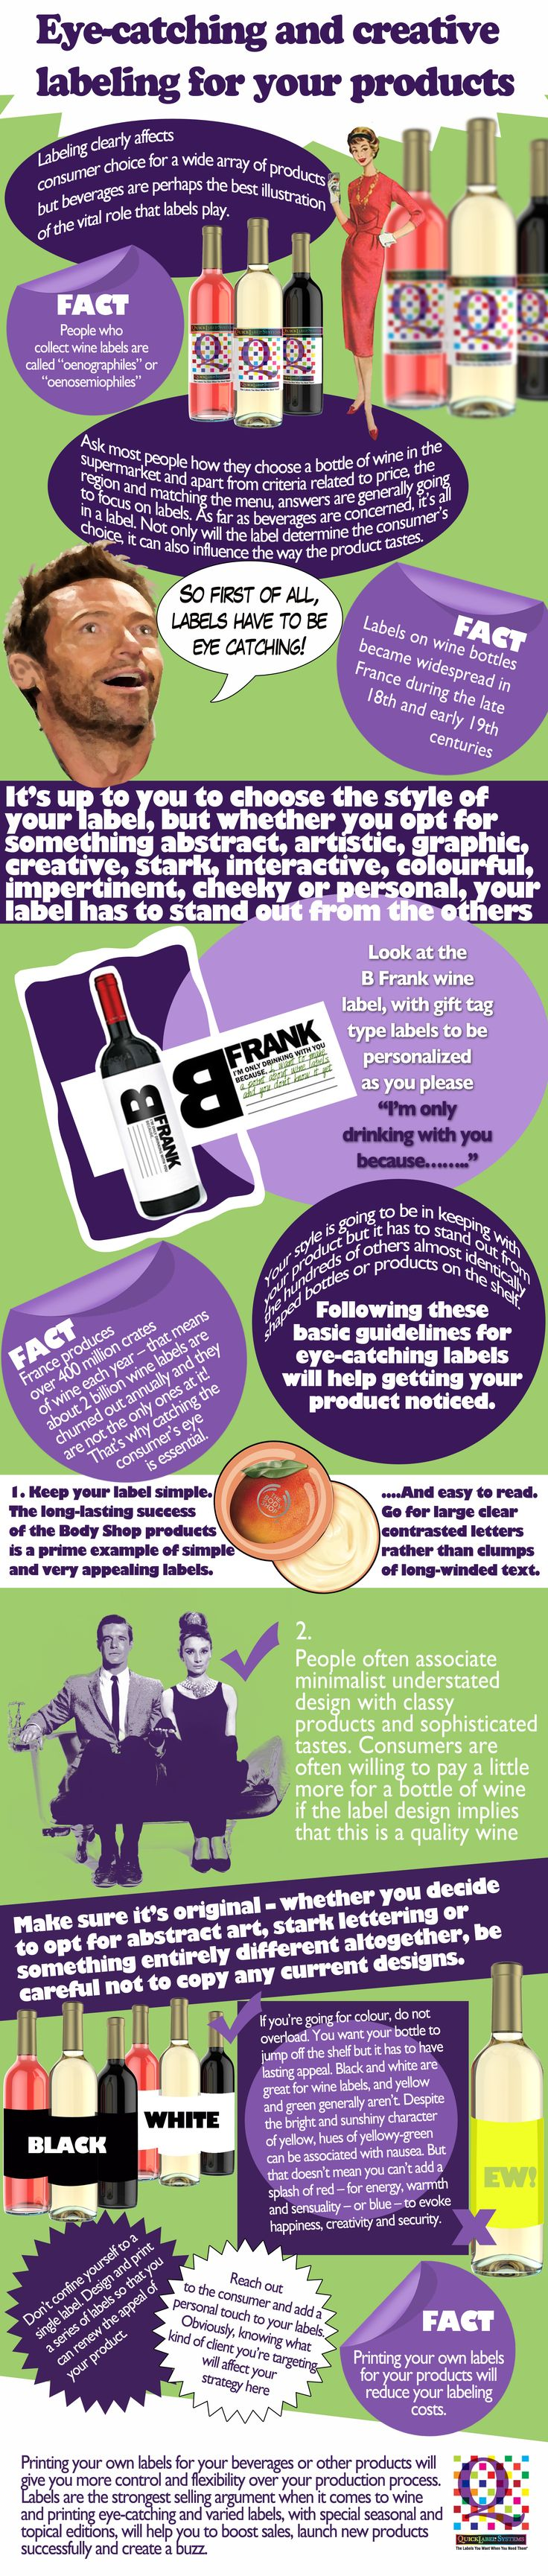 Wine labels matter whether you collect them or not! - As the infographic shows, many people select their wines by picking the most attractive labels. Having your own label printer gives you the competitive edge. http://www.quicklabel.co.uk/